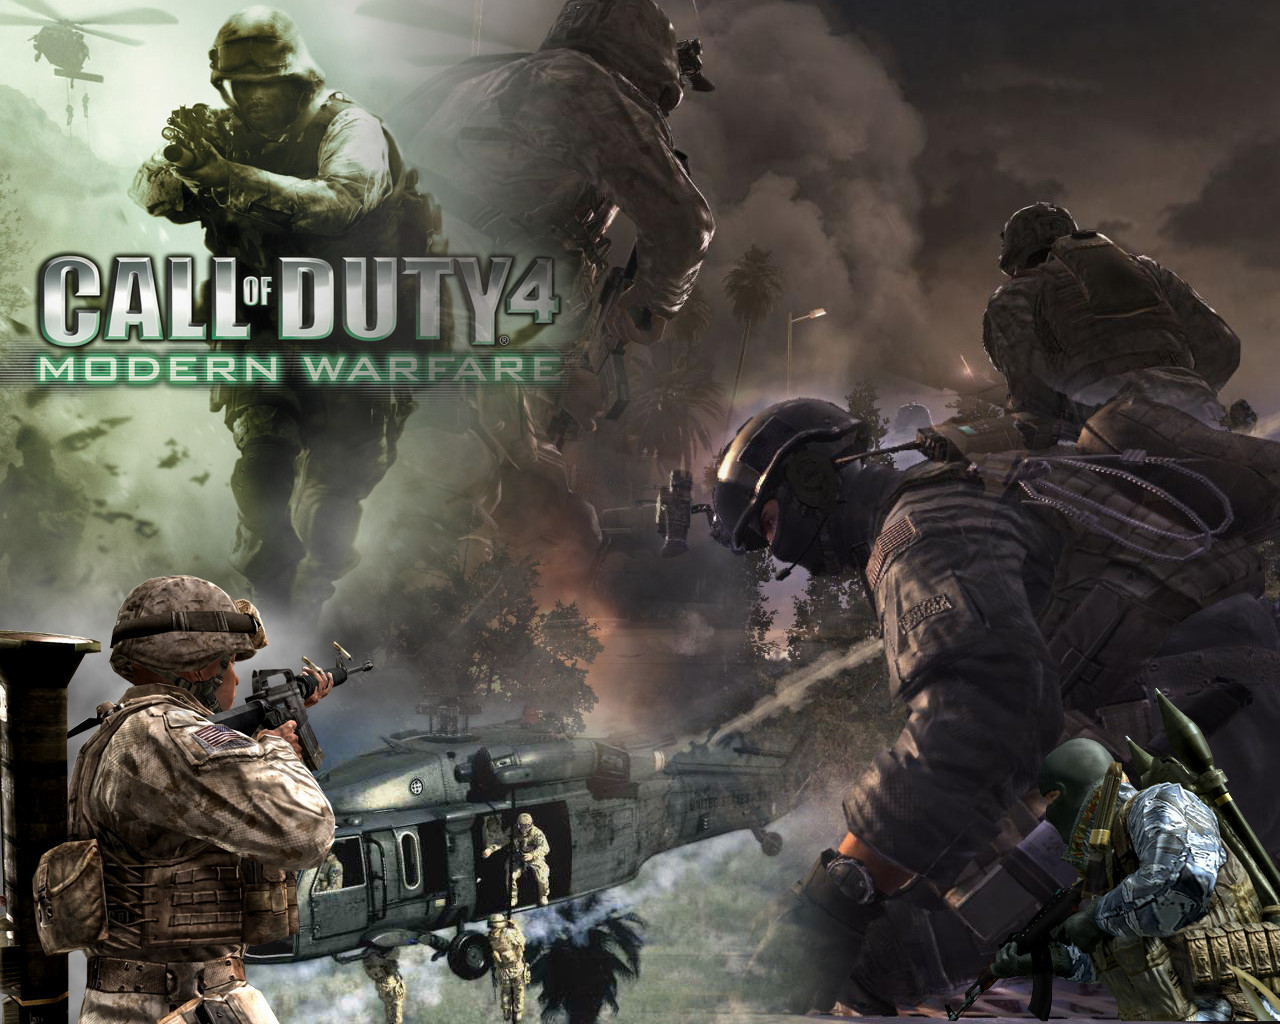 http://4.bp.blogspot.com/-hWGB213arEQ/UJG5x81fKxI/AAAAAAAAAPE/iZ6DkwHZ_7M/s1600/call-of-duty-4-wallpaper-modern-warfare-screenssuper-collage.jpg